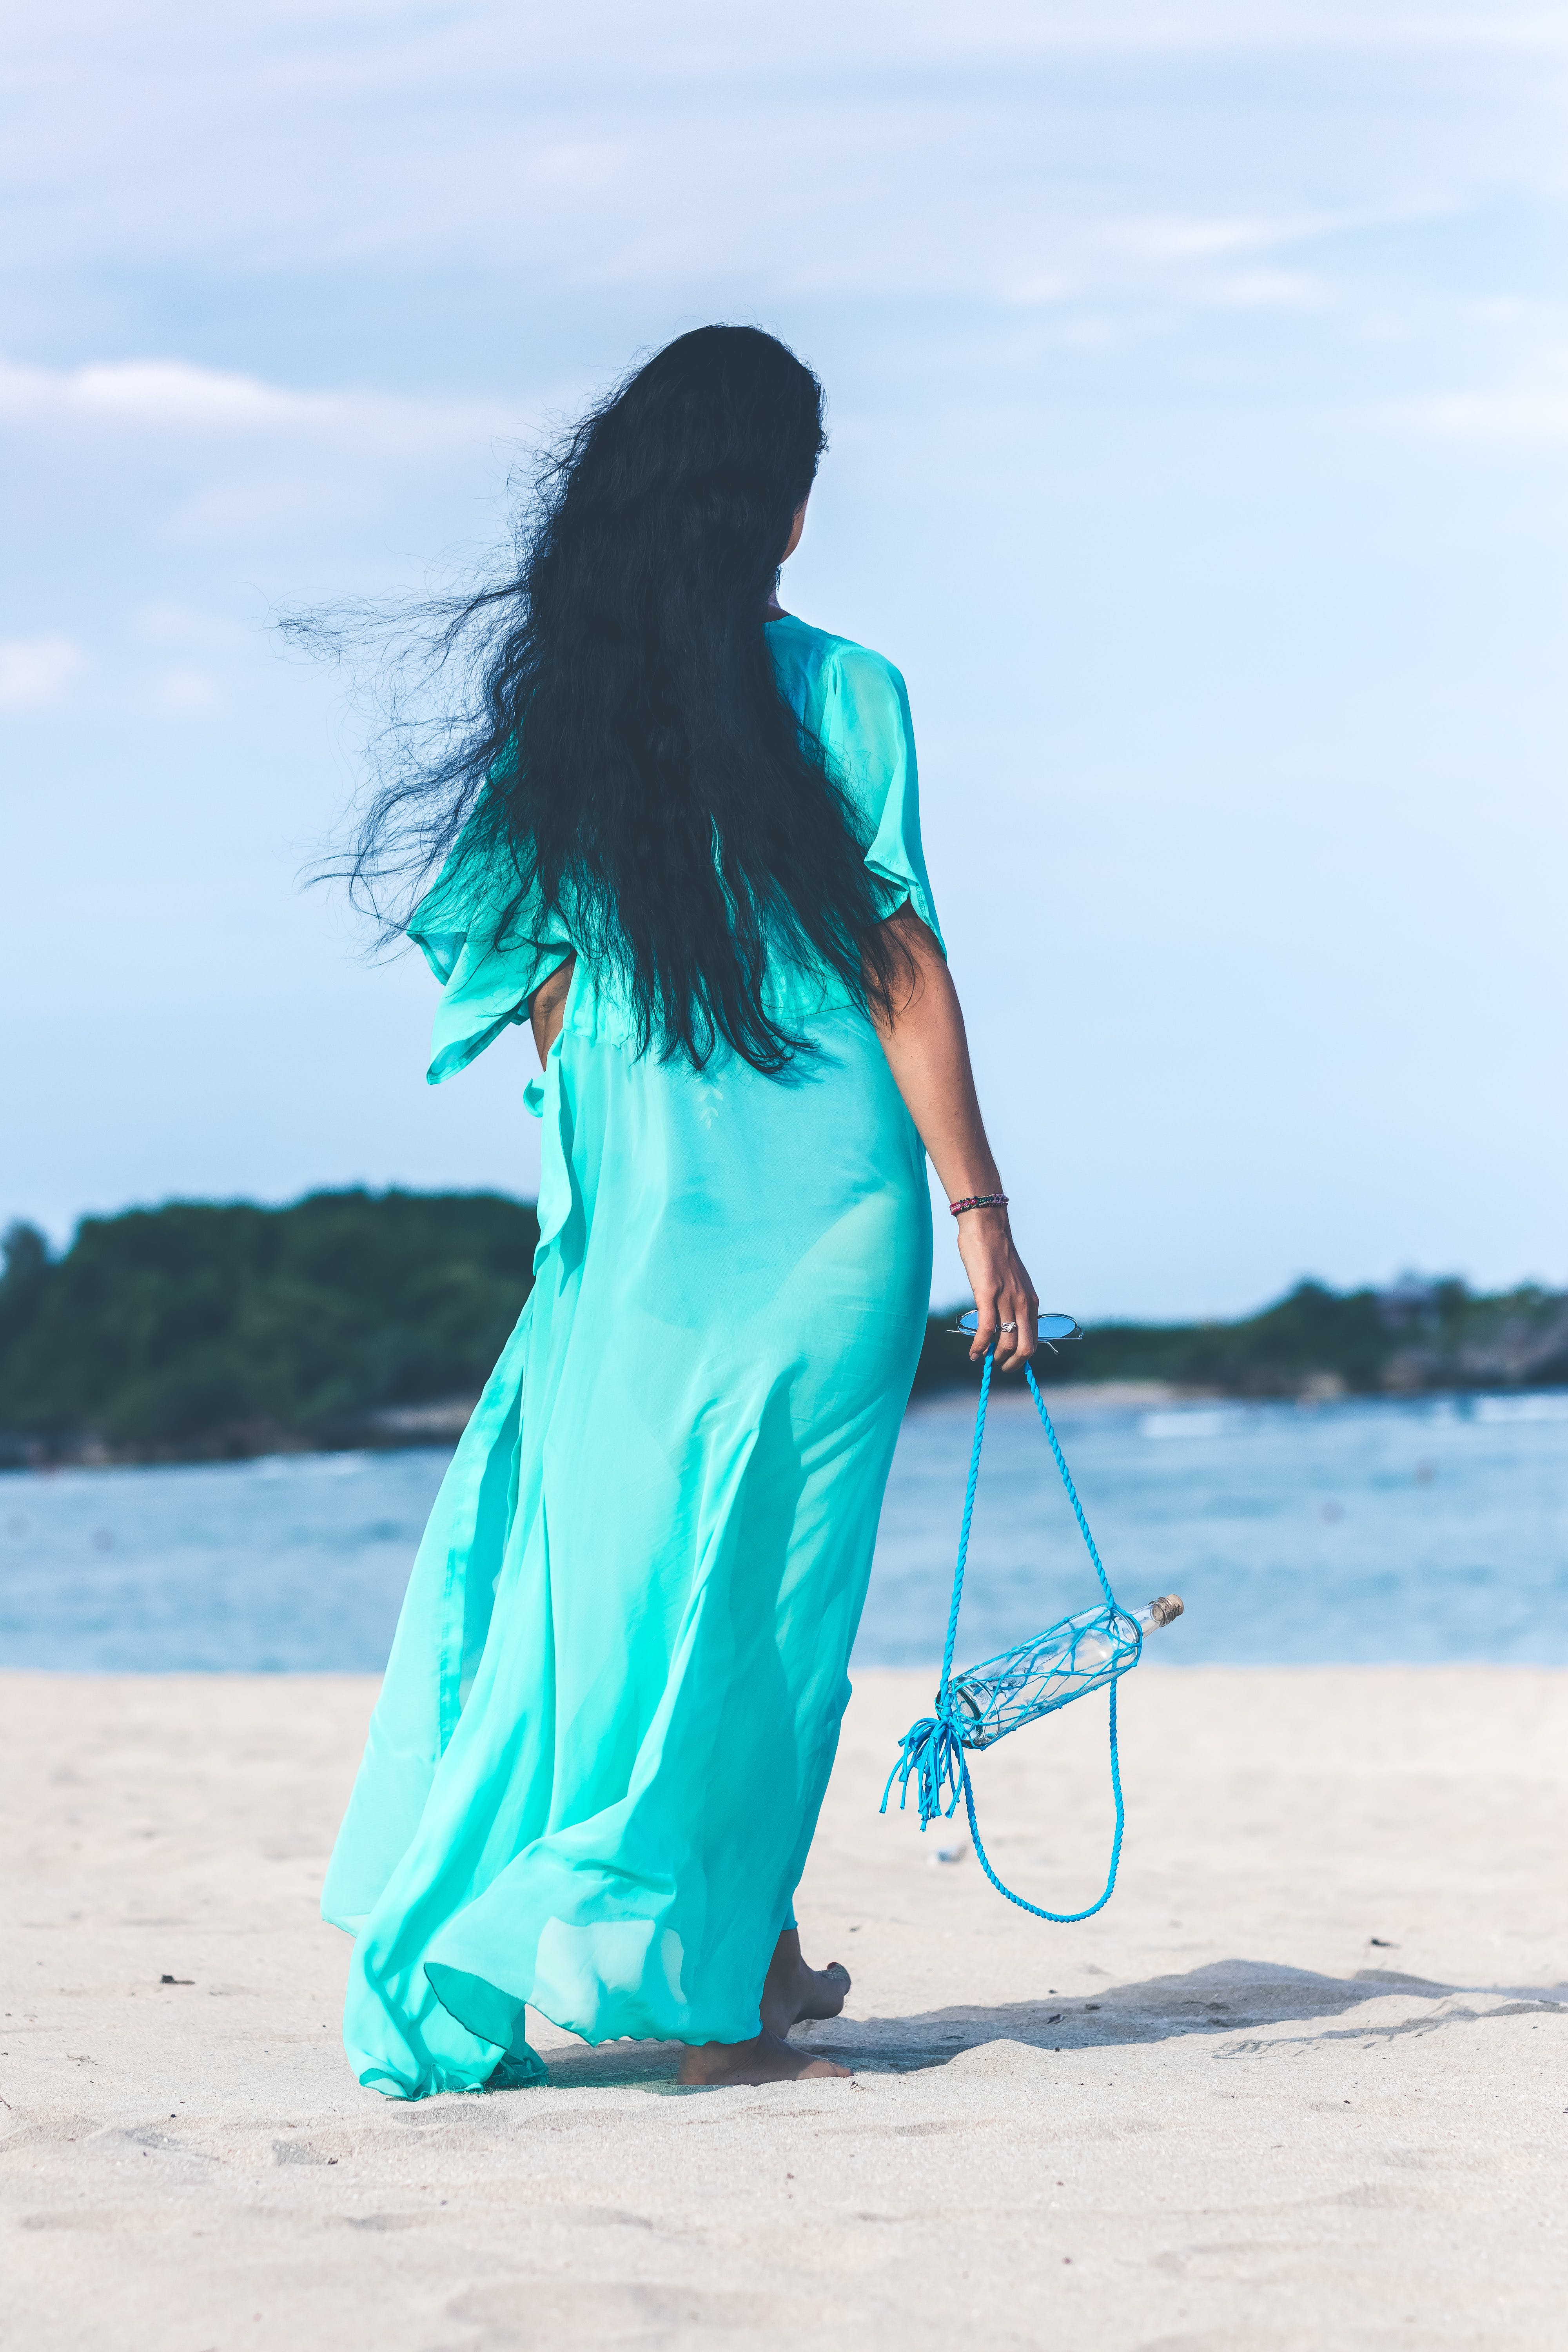 Woman in Teal Dress Standing on Beach